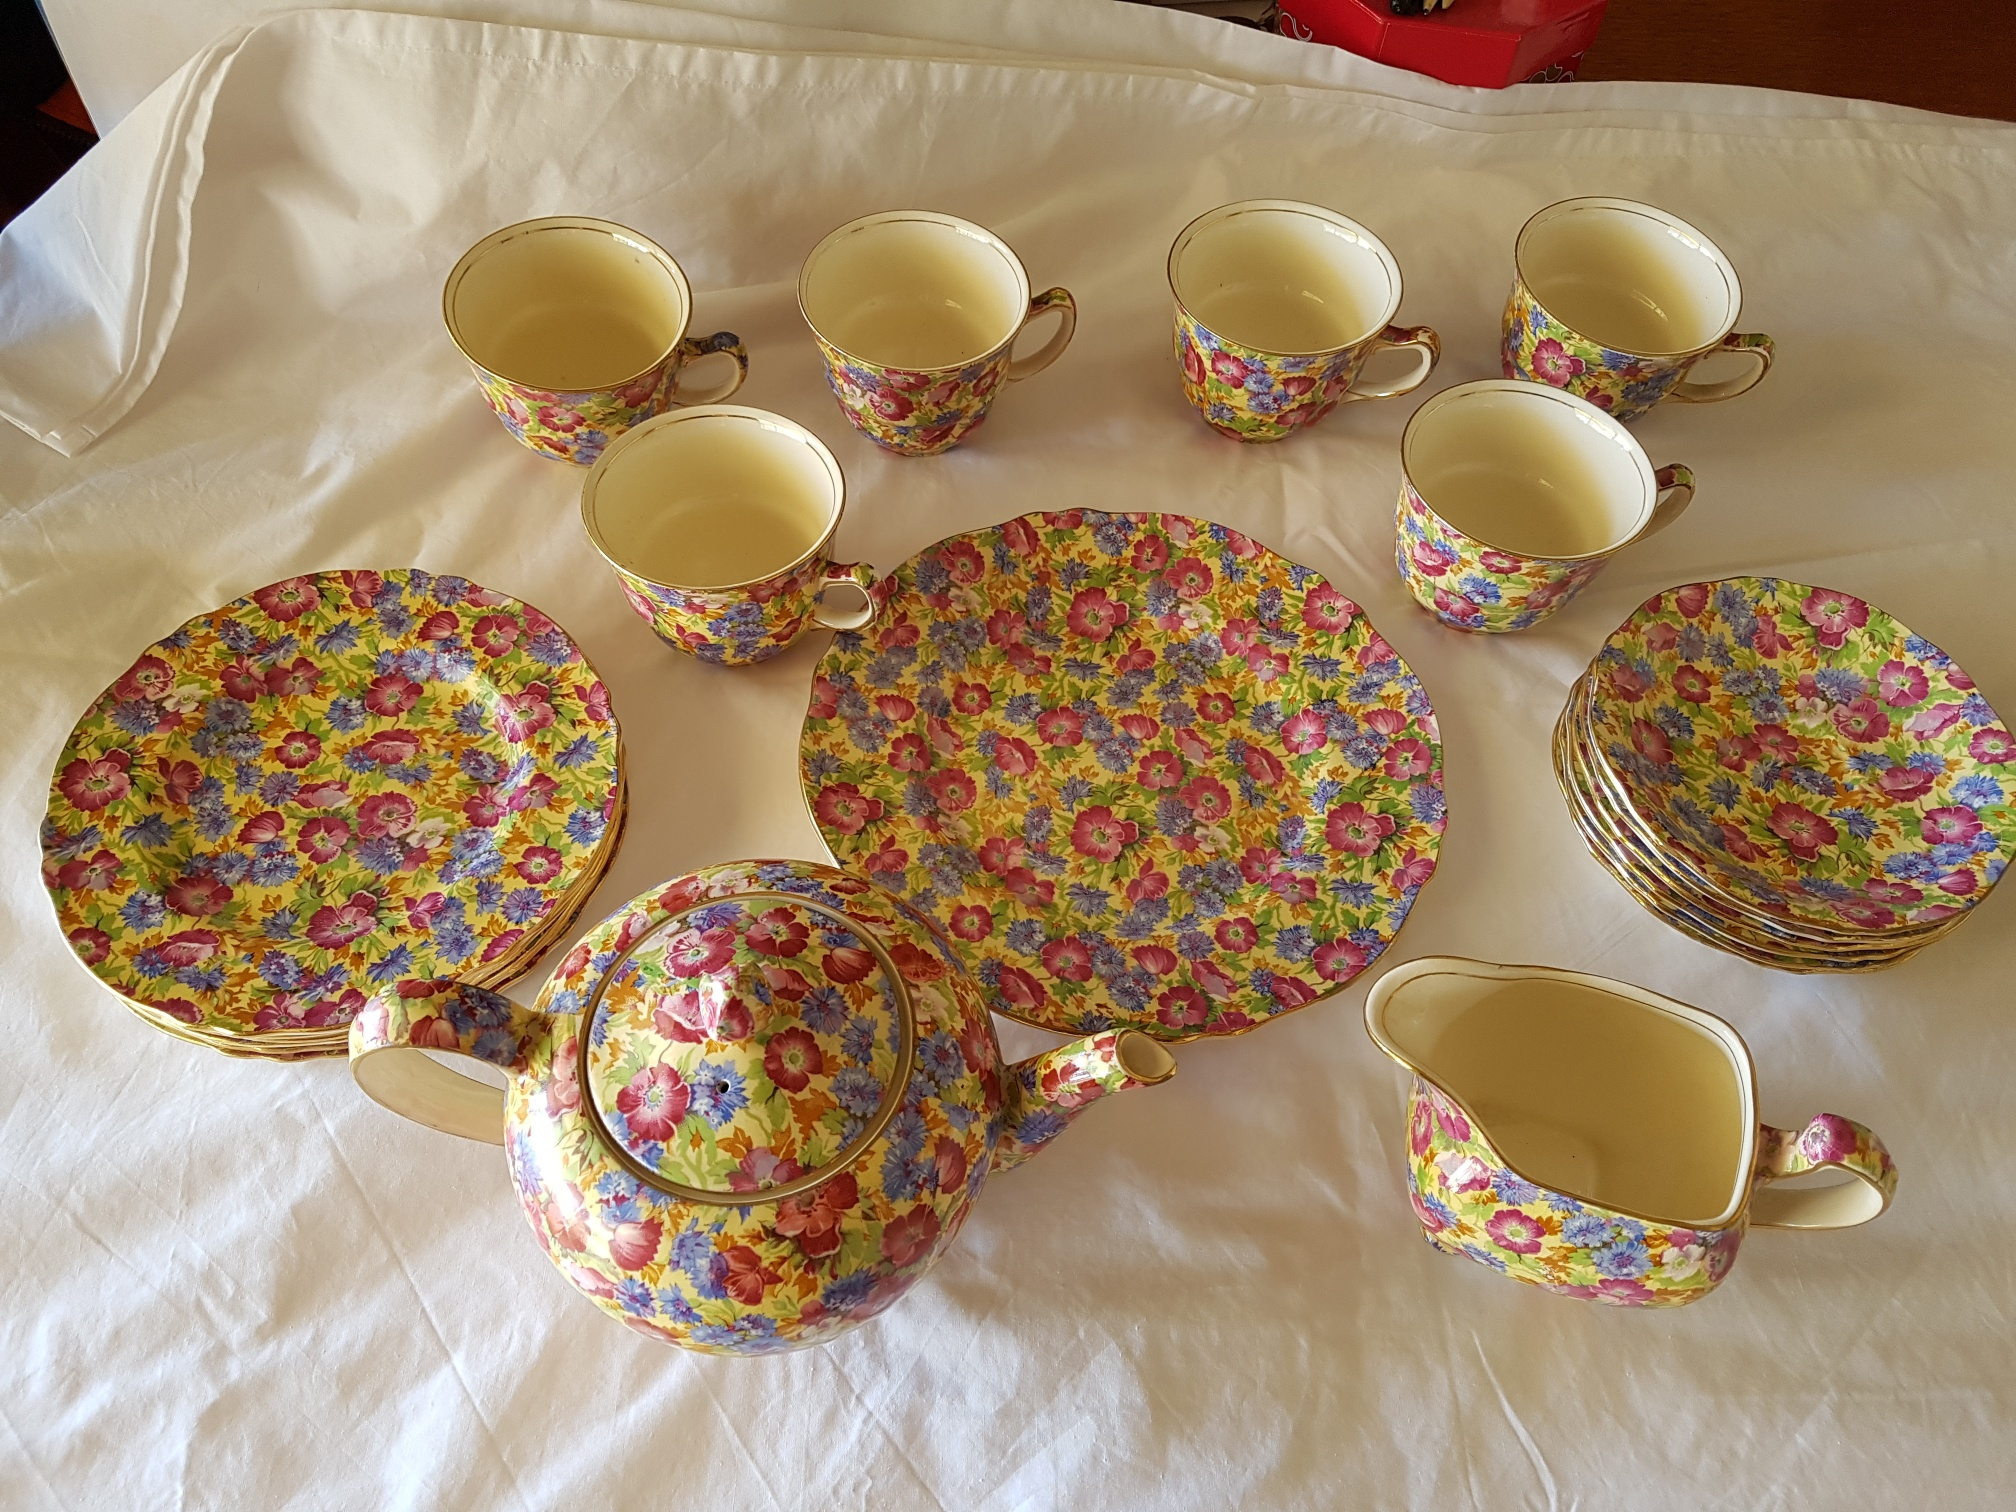 Full Tea set.jpg